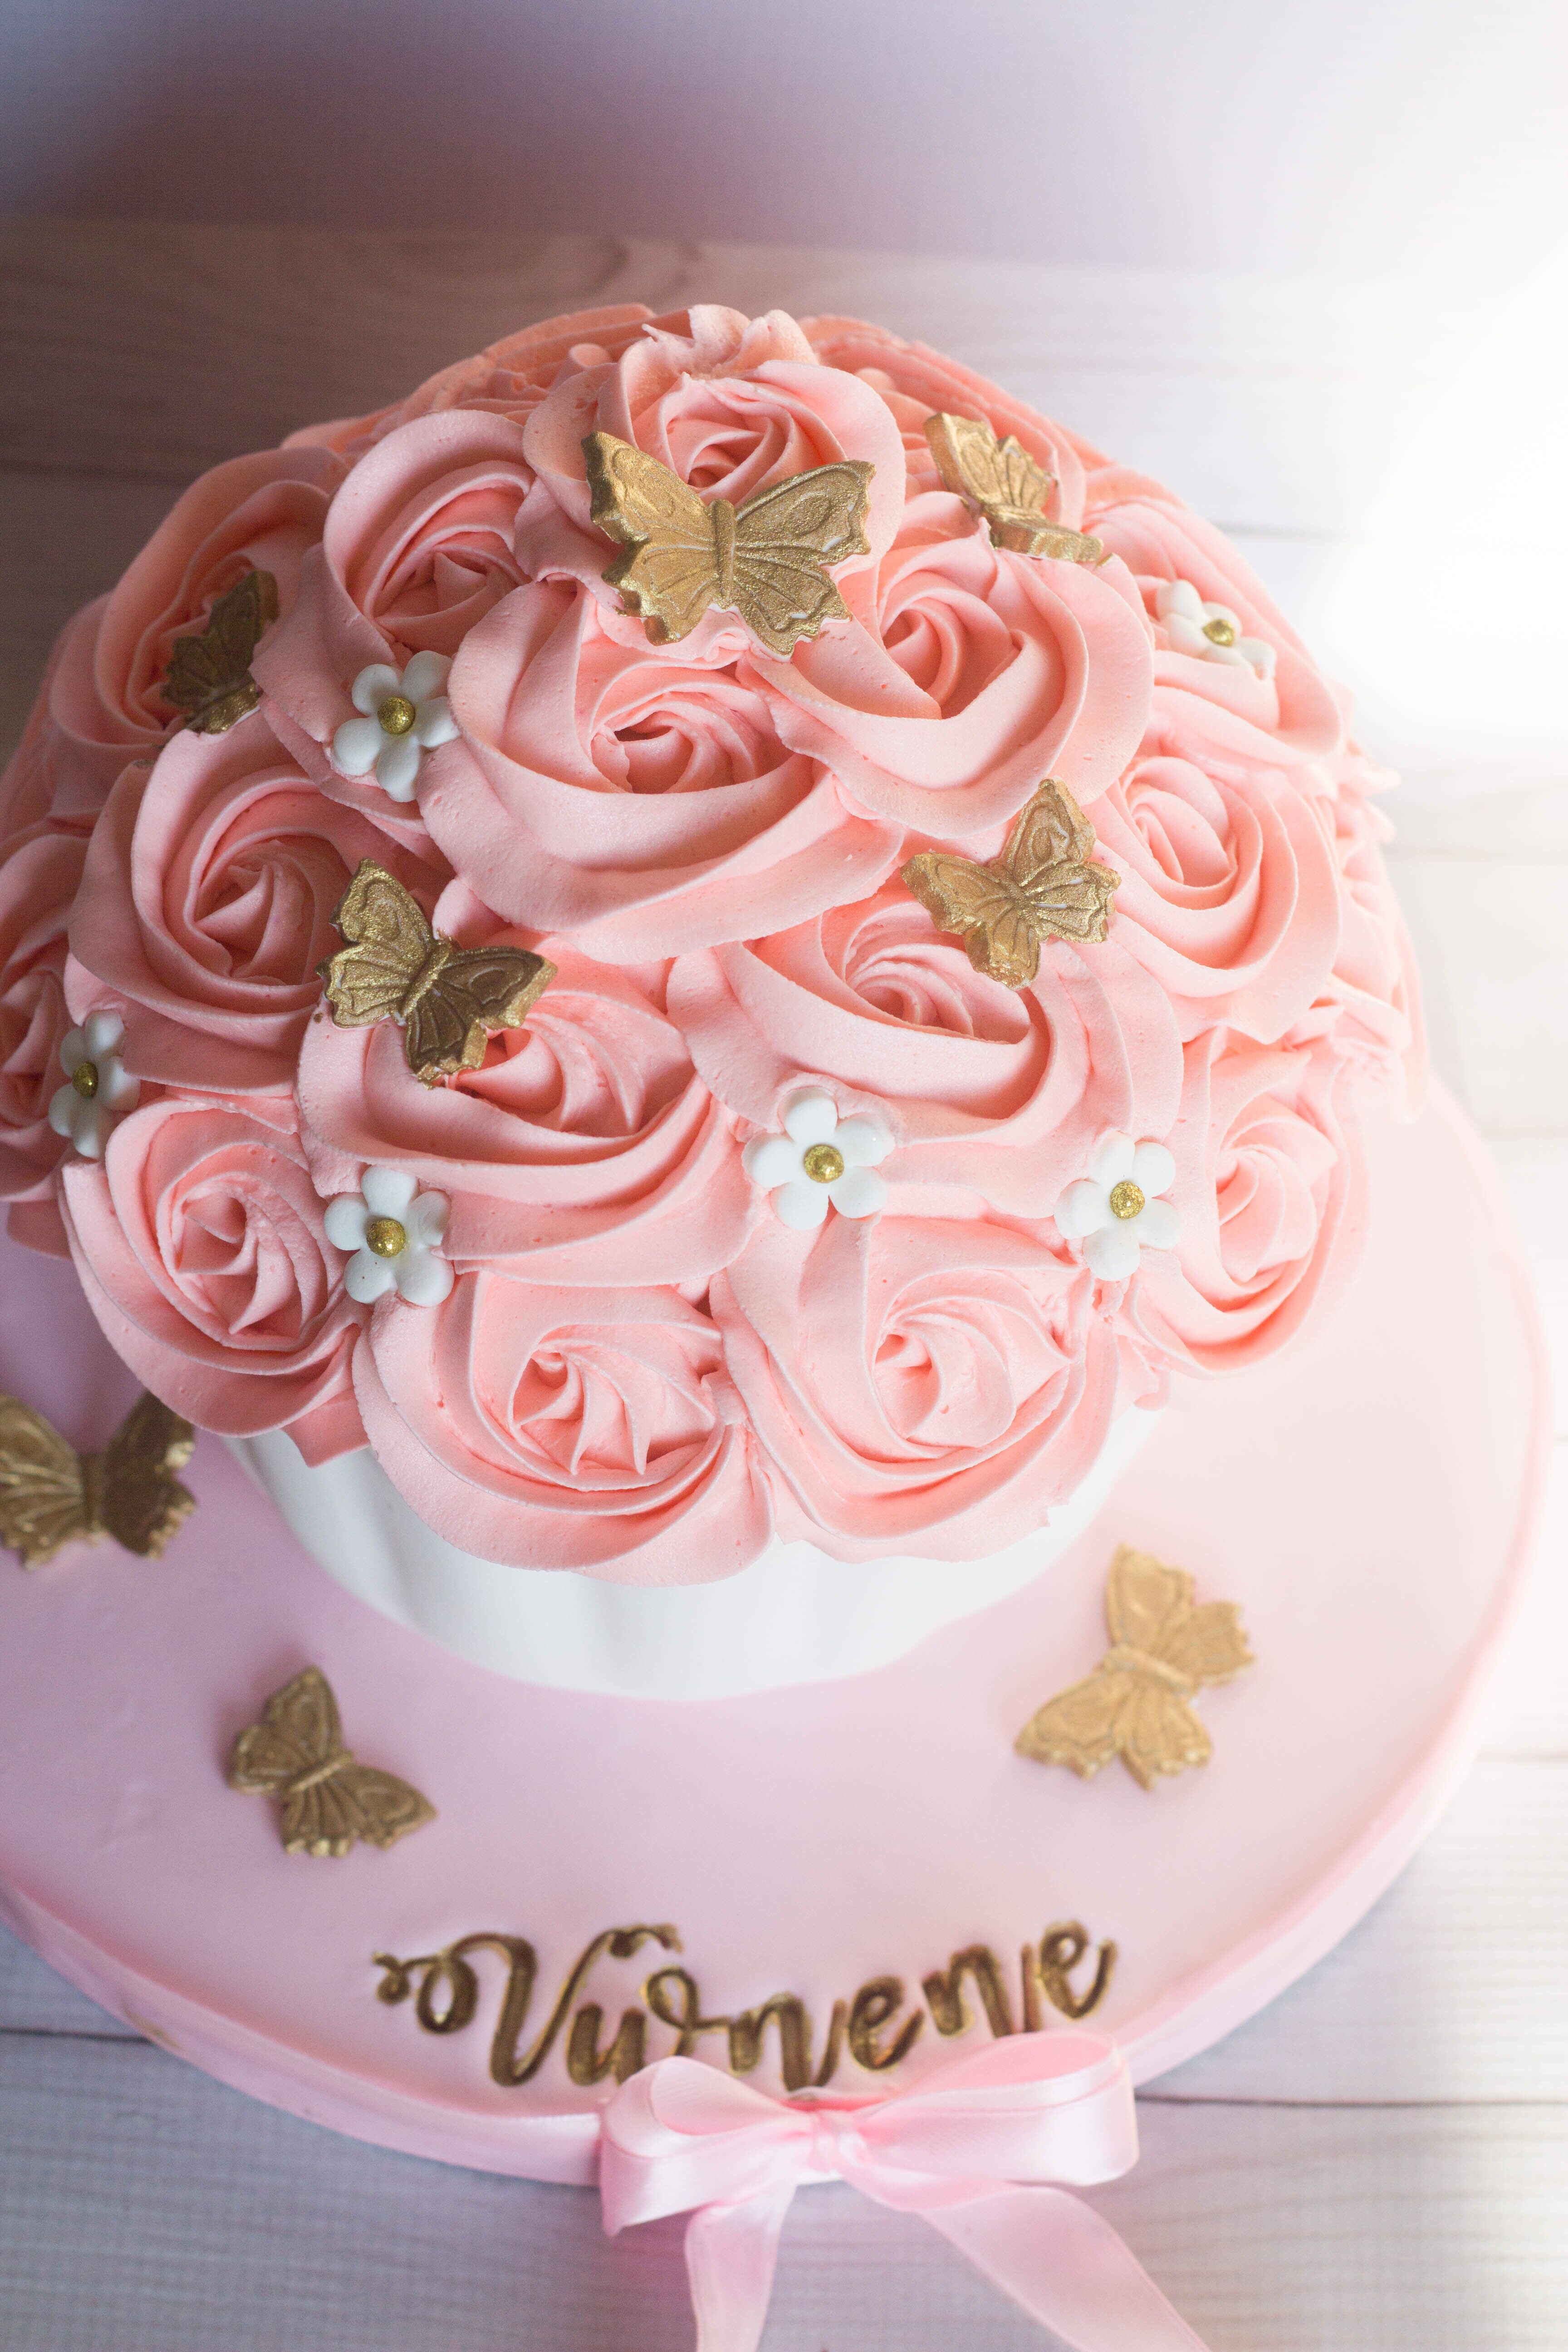 Pink And Gold Giant Cupcake With Images Giant Cupcake Cakes